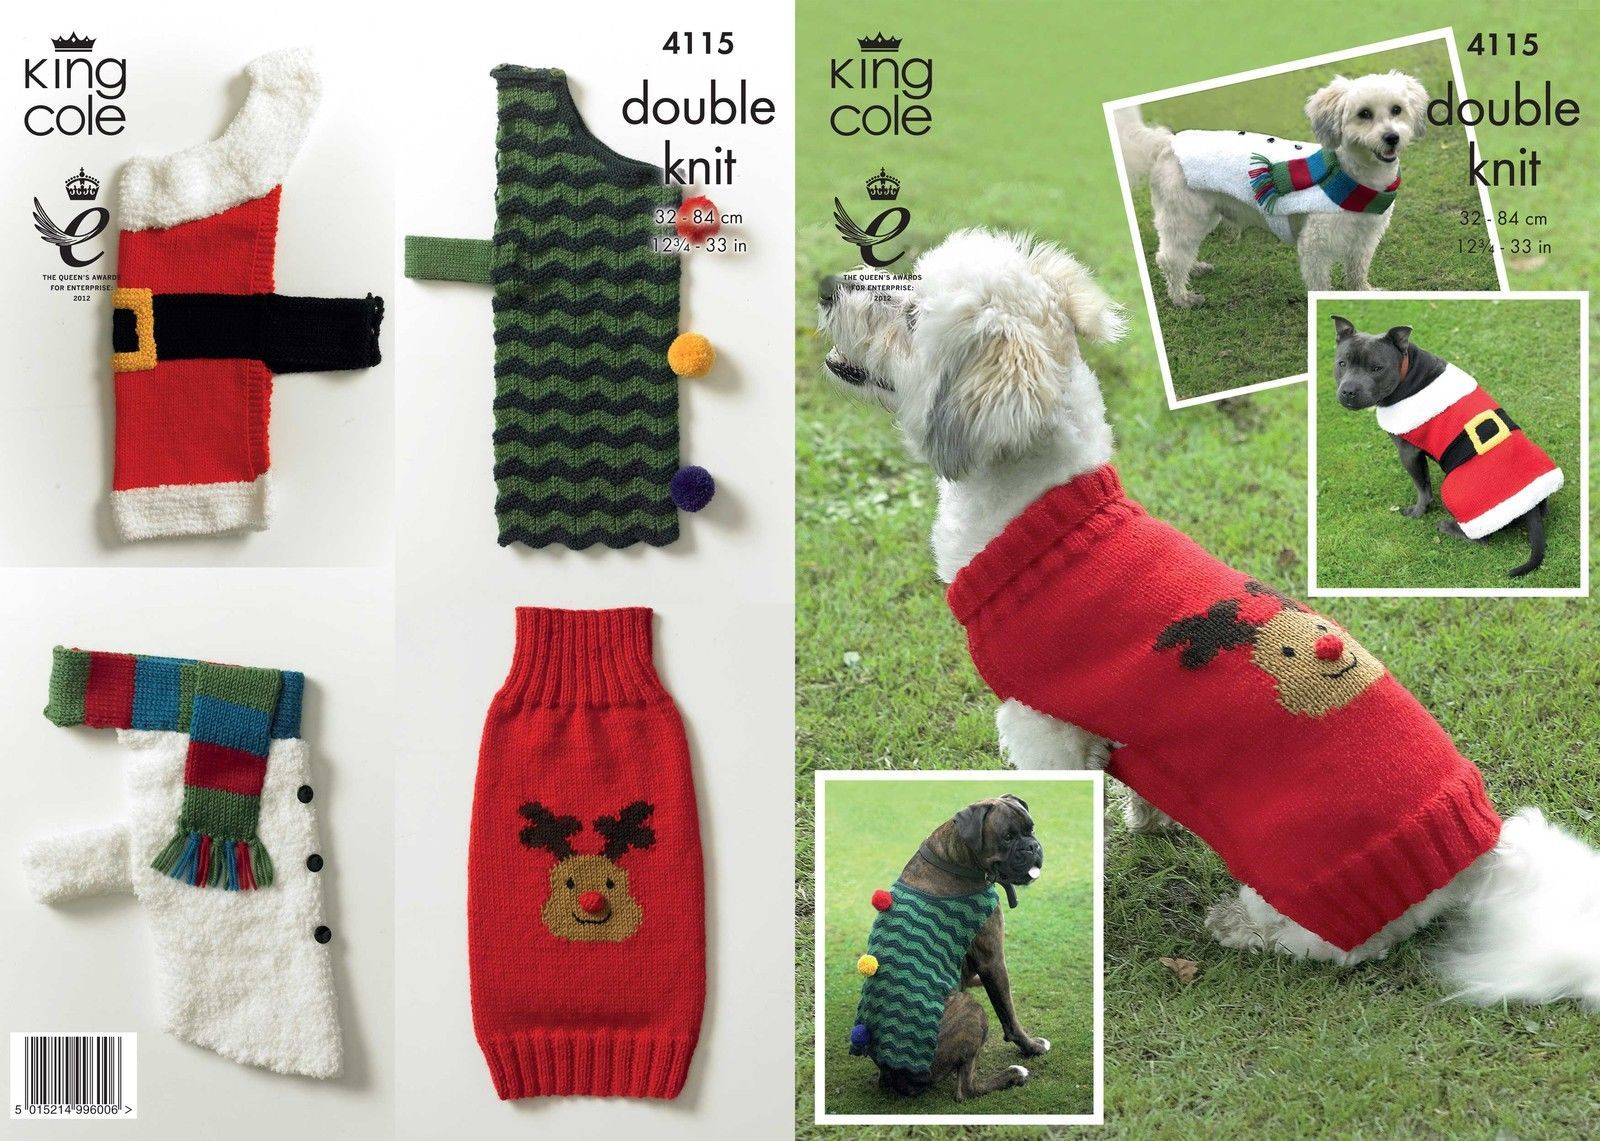 4115 - KING COLE DK CHRISTMAS DOG COAT KNITTING PATTERN - SIZE 12.75 TO 33